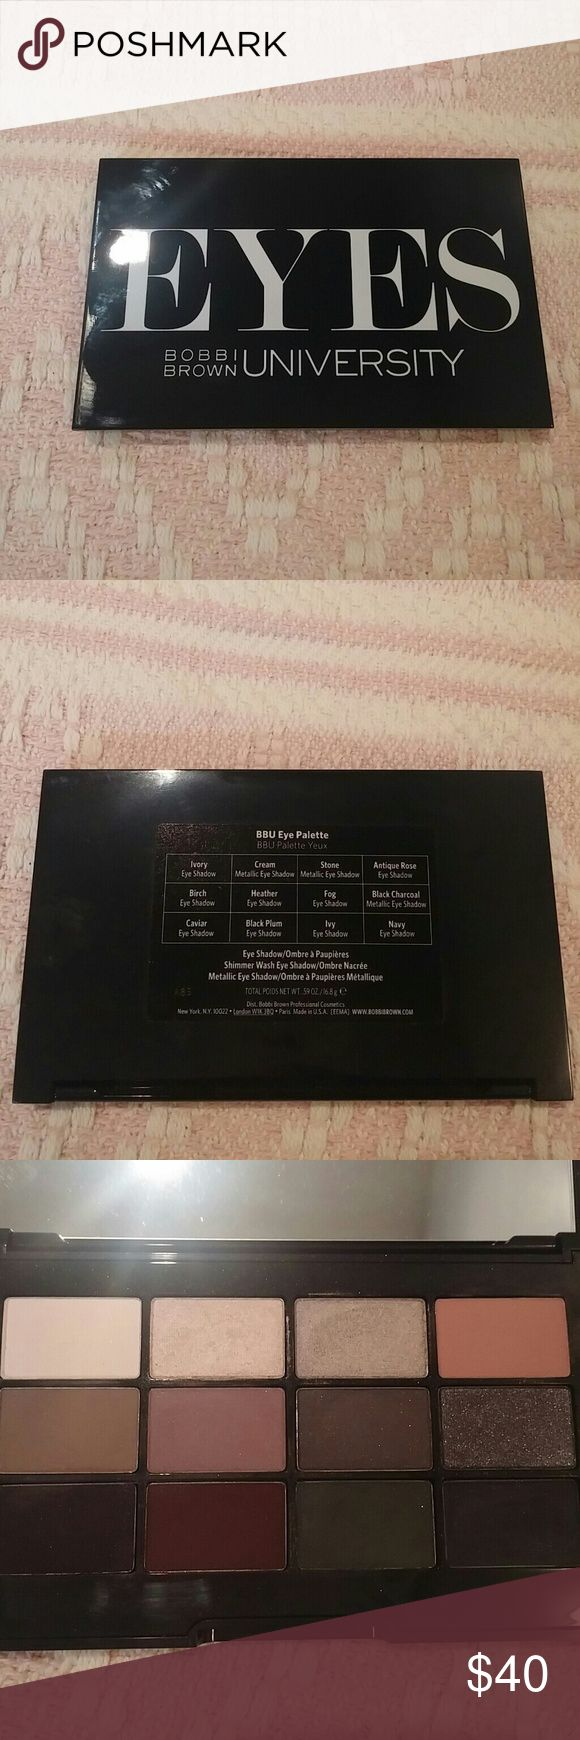 Bobbi Brown University Eyes palette 12 Shadow palette by Bobbi Brown. This was a holiday launch from 2 seasons ago. Mix of matte, satin, and one glitter shade. Great quality. Bobbi Brown Makeup Eyeshadow